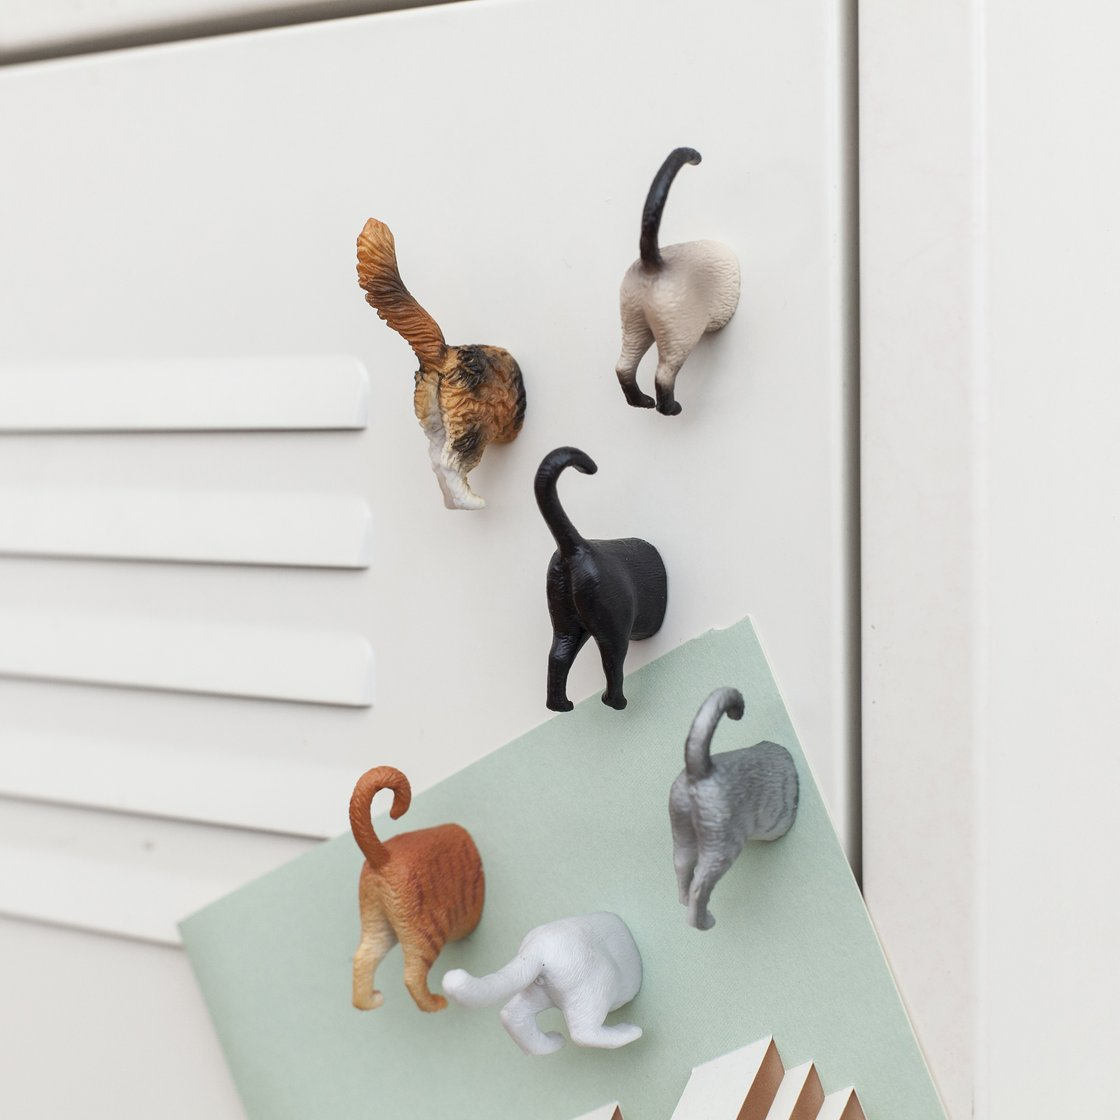 Cat Butt Magnets in action